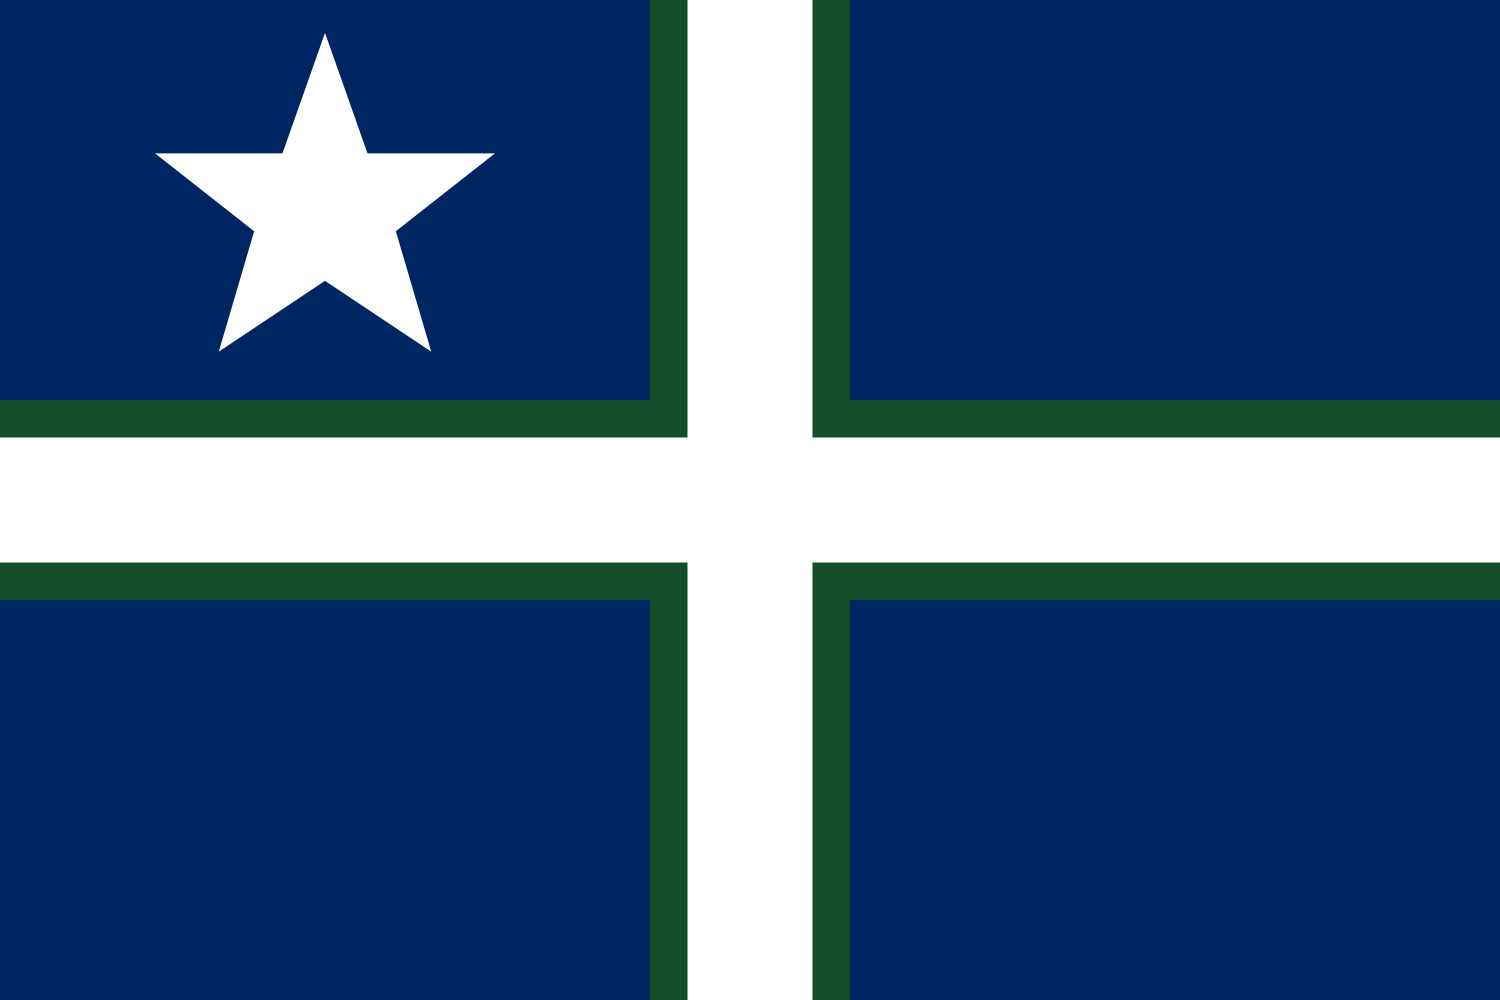 new MA flag 3.png